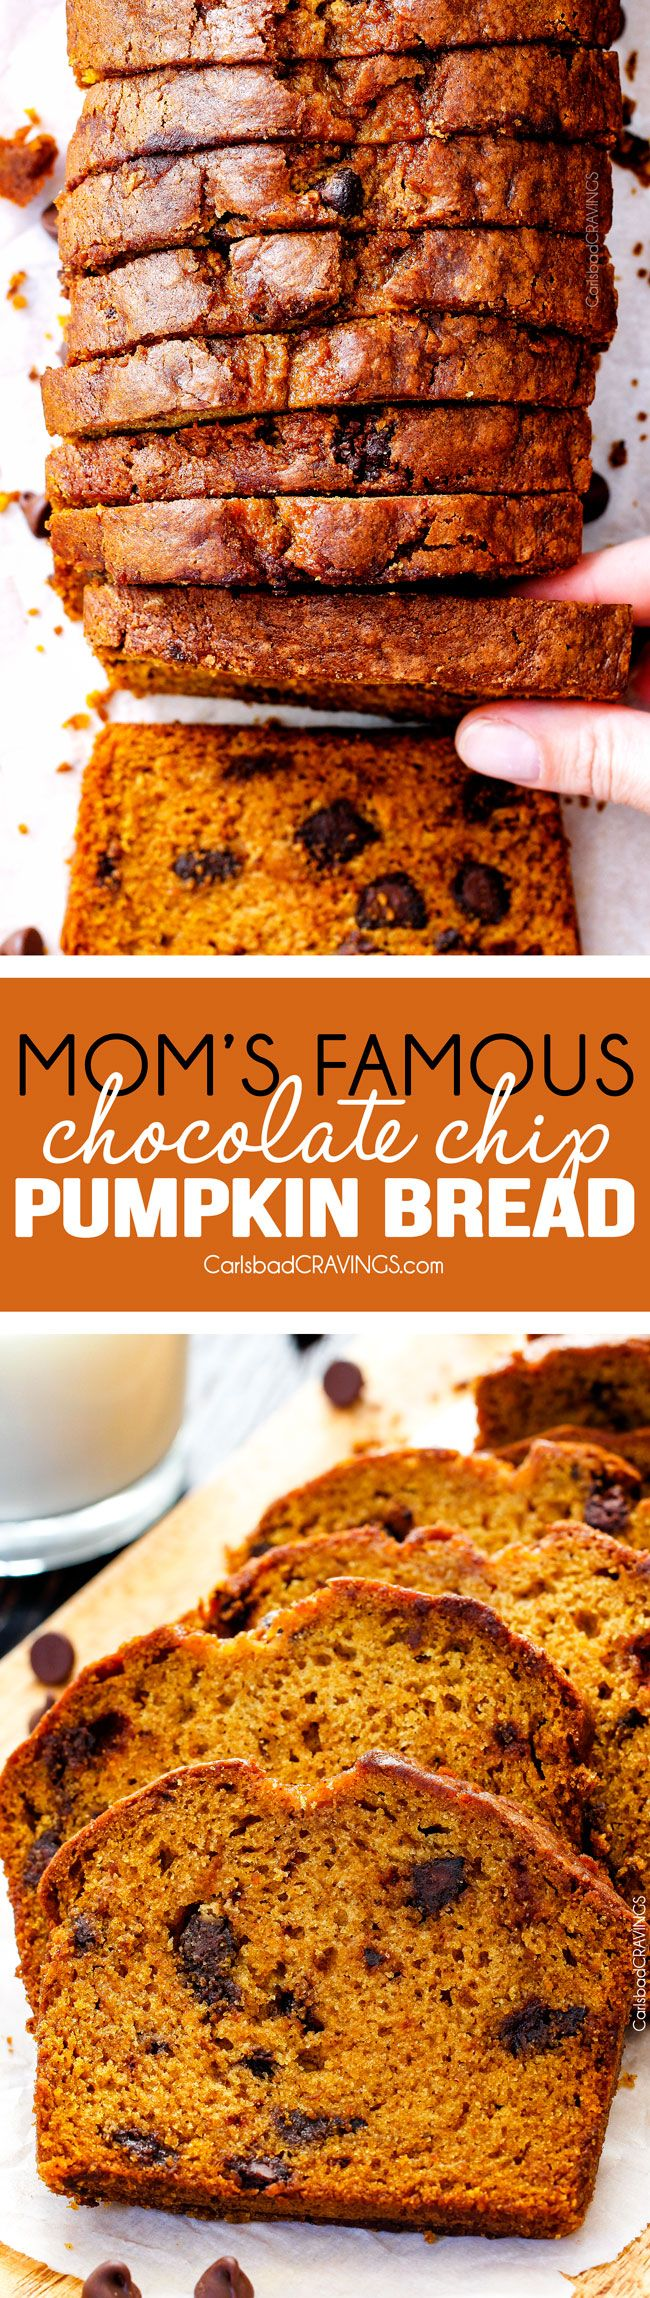 Mom's Famous Chocolate Chip Pumpkin Bread